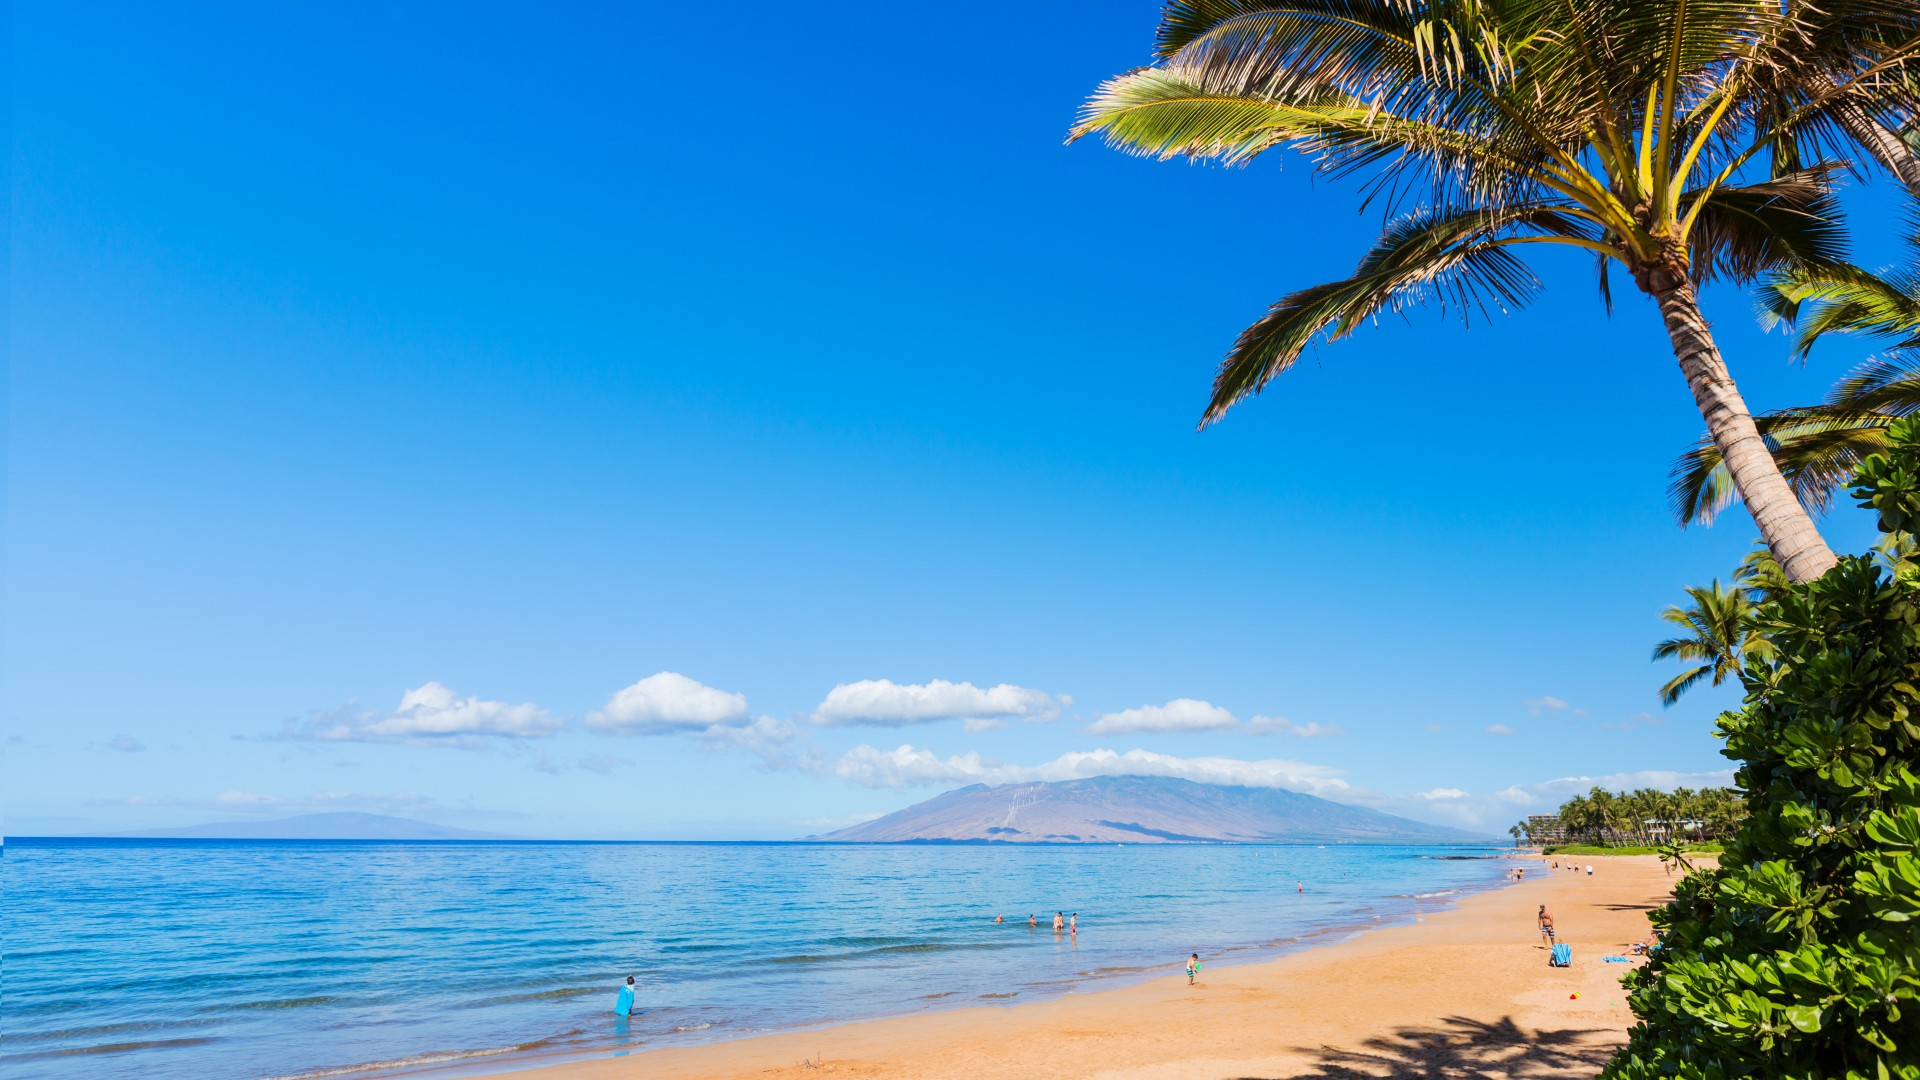 Download Cool Quotes Wallpapers Wallpaper Maui Hawaii Beach Ocean Coast Palm Sky 5k